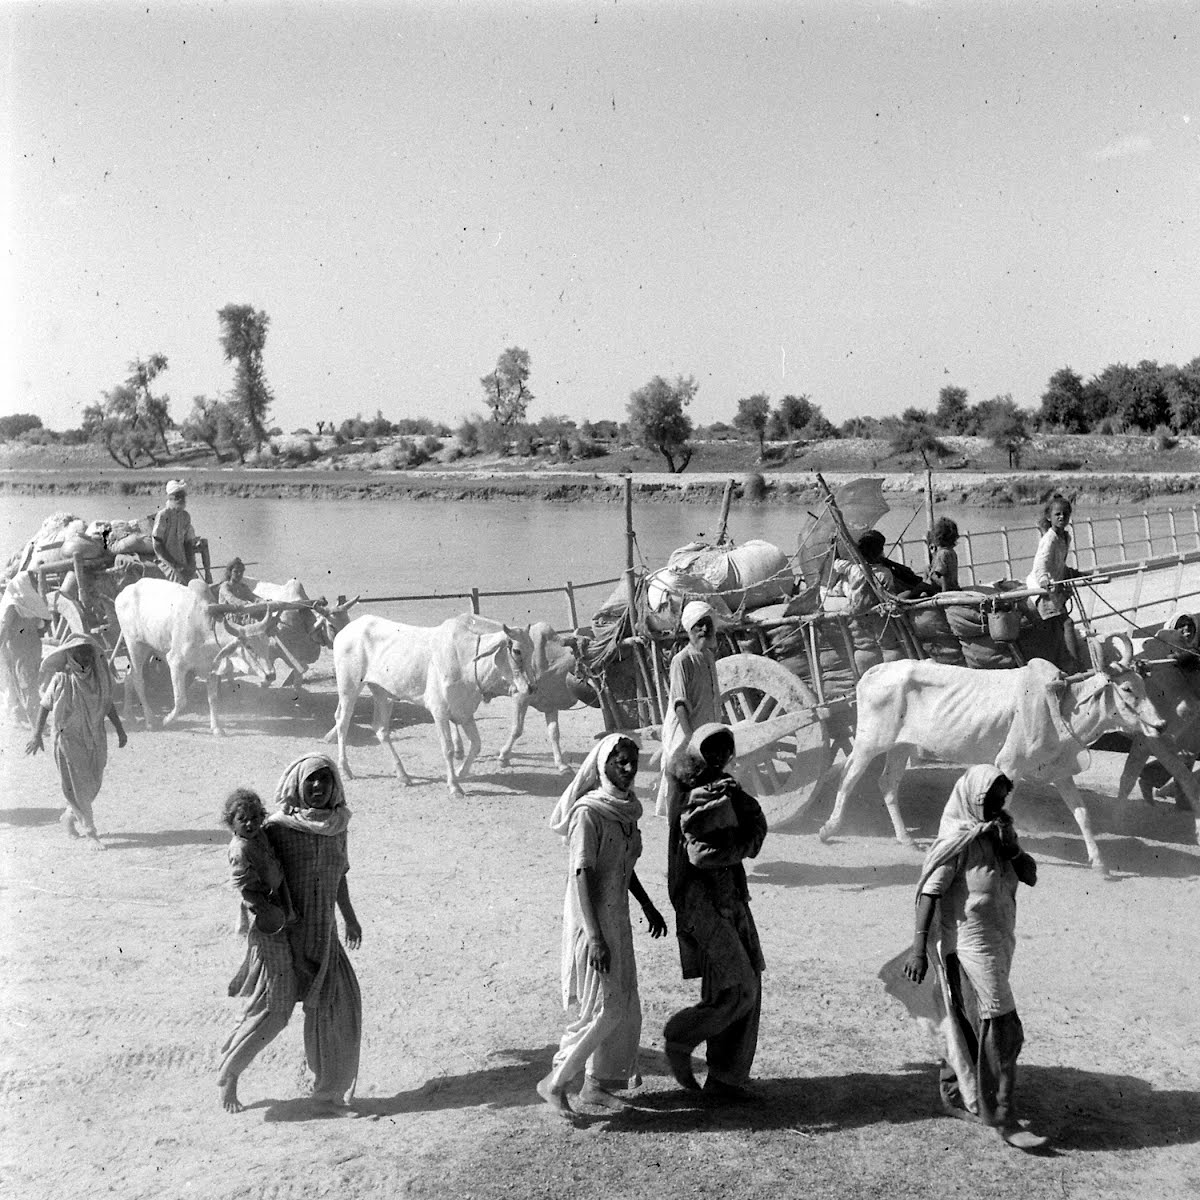 the creation of pakistan after the indian independence India attained independence on august 15th 1947, after a great political and social struggle the british had ruled over india for a considerable period of time.